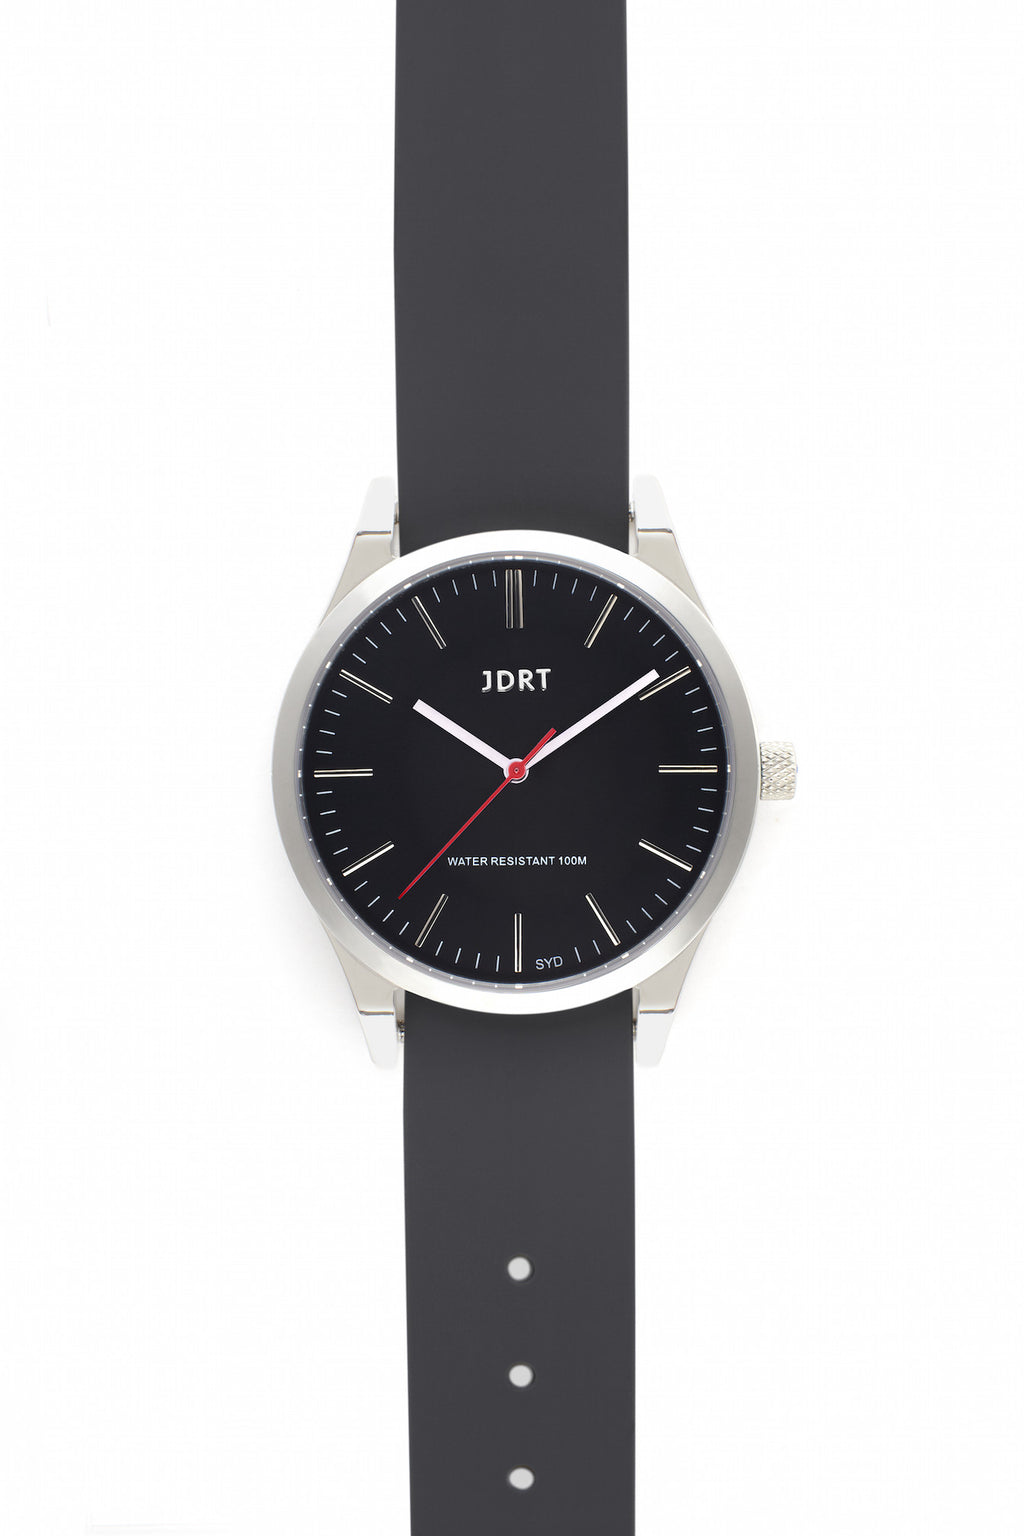 Jet Face with Slate Silicone Watch Band